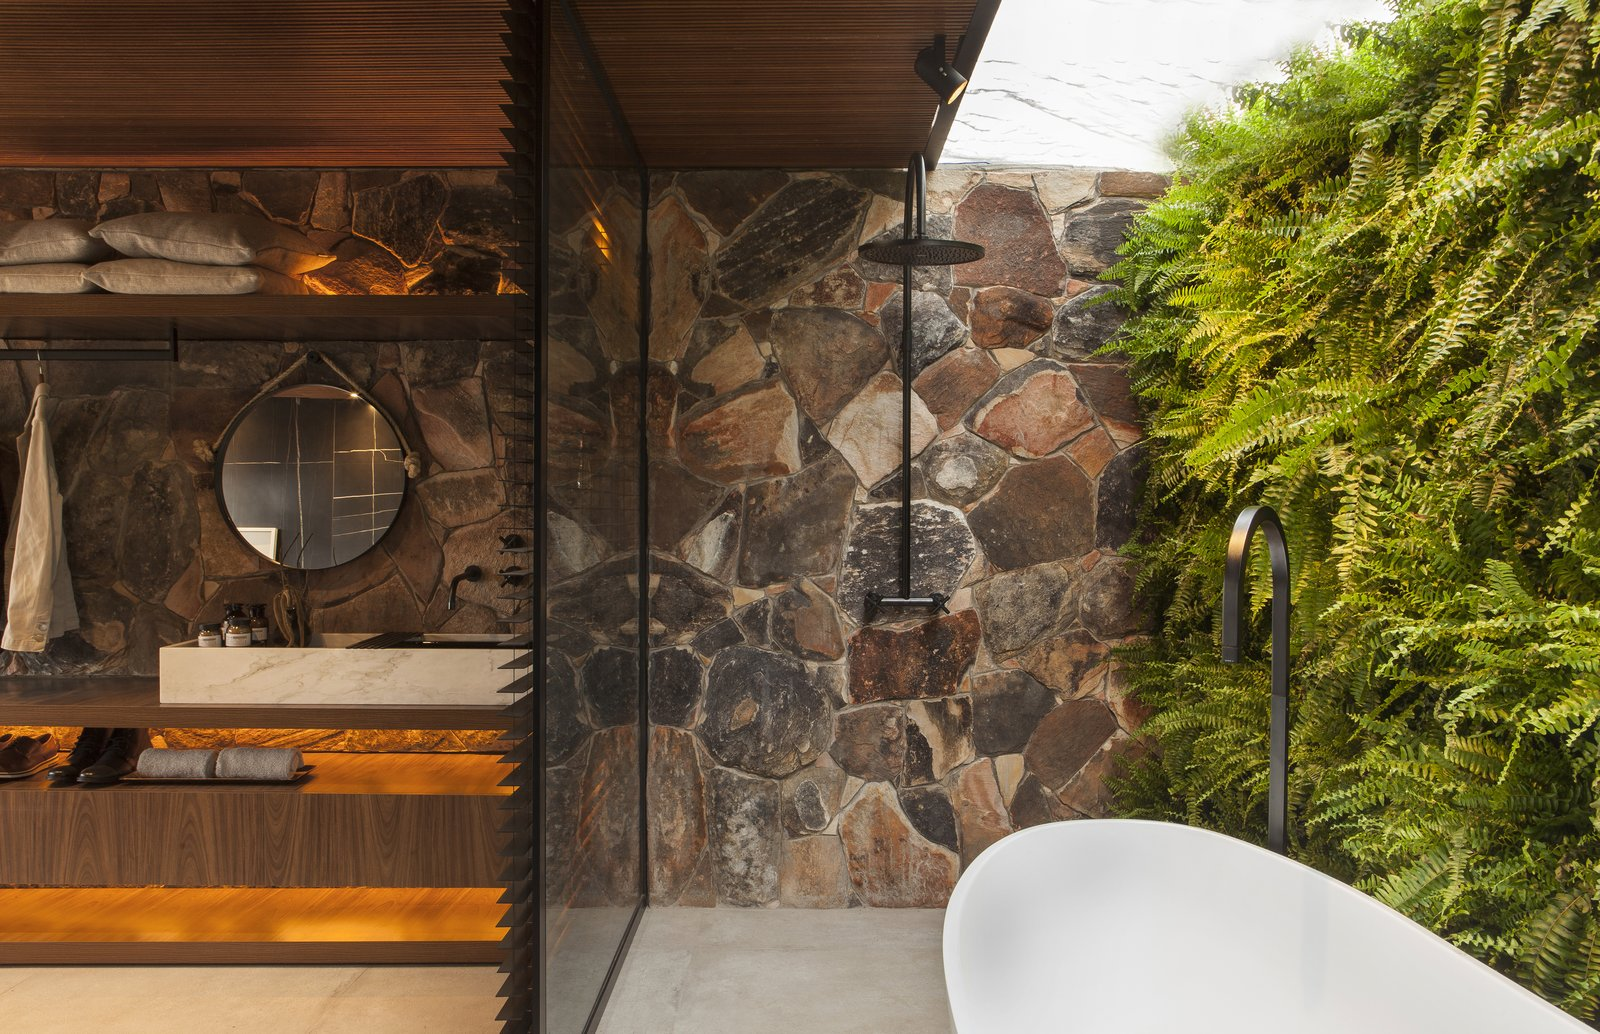 Bath Room, Freestanding Tub, Track Lighting, Vessel Sink, Concrete Floor, Wood Counter, and Stone Slab Wall Partially outdoors, the unconventional bathroom is a lush sanctuary.  Photo 11 of 14 in An Incredible Brazilian Home That Celebrates Art, Travel, and Nature